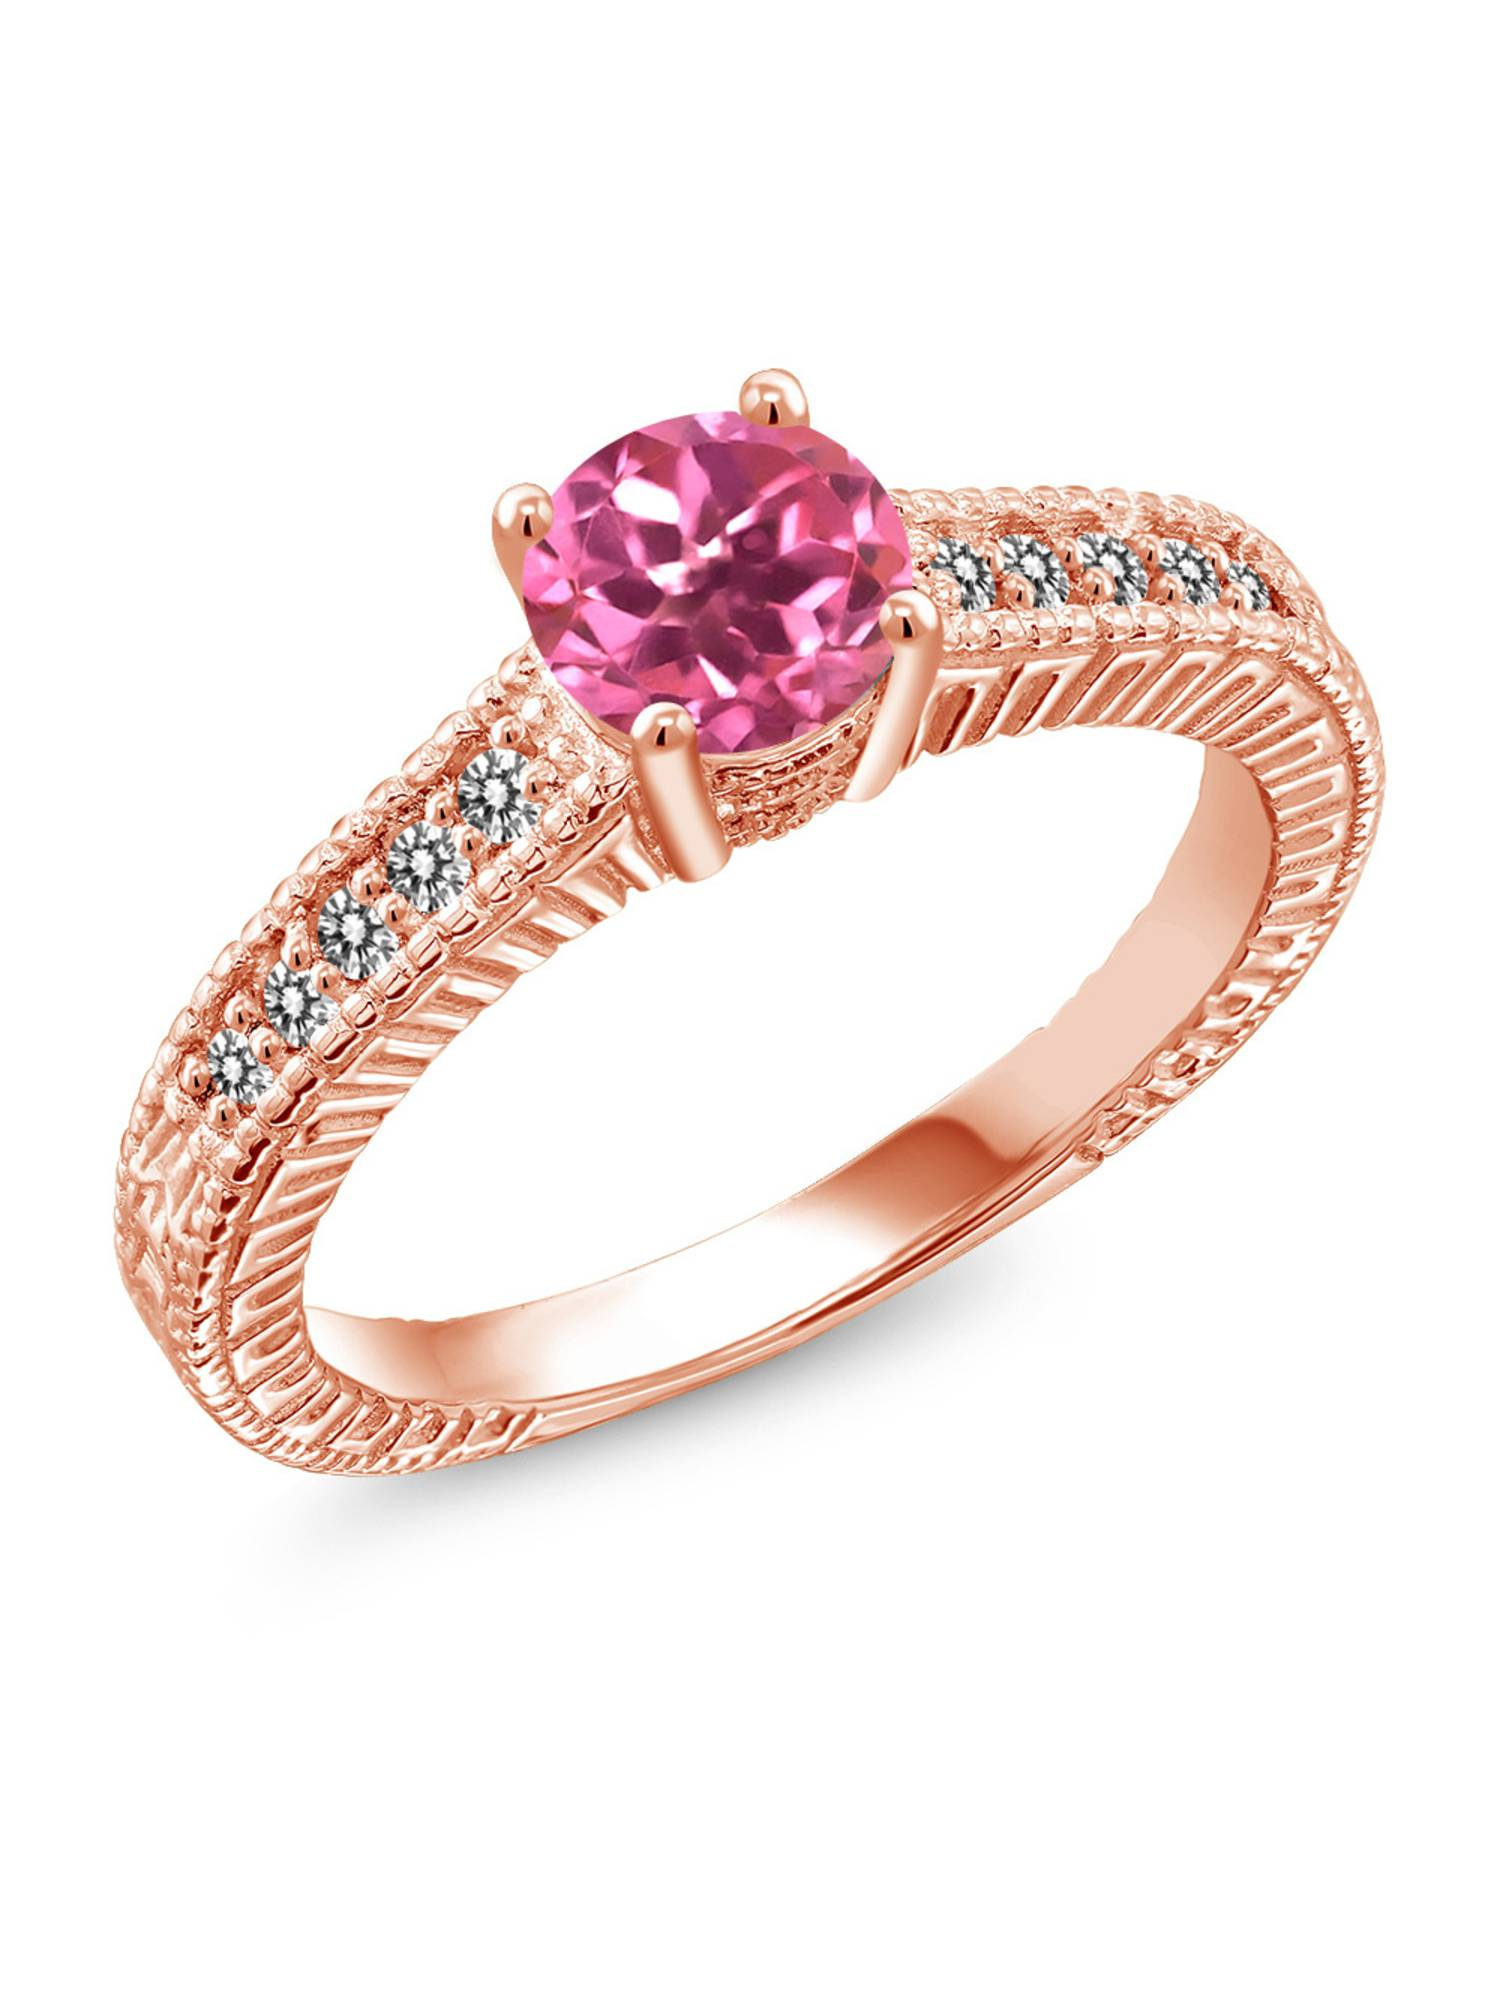 1.17 Ct Round Pink Mystic Topaz White Diamond 18K Rose Gold Plated Silver Ring by